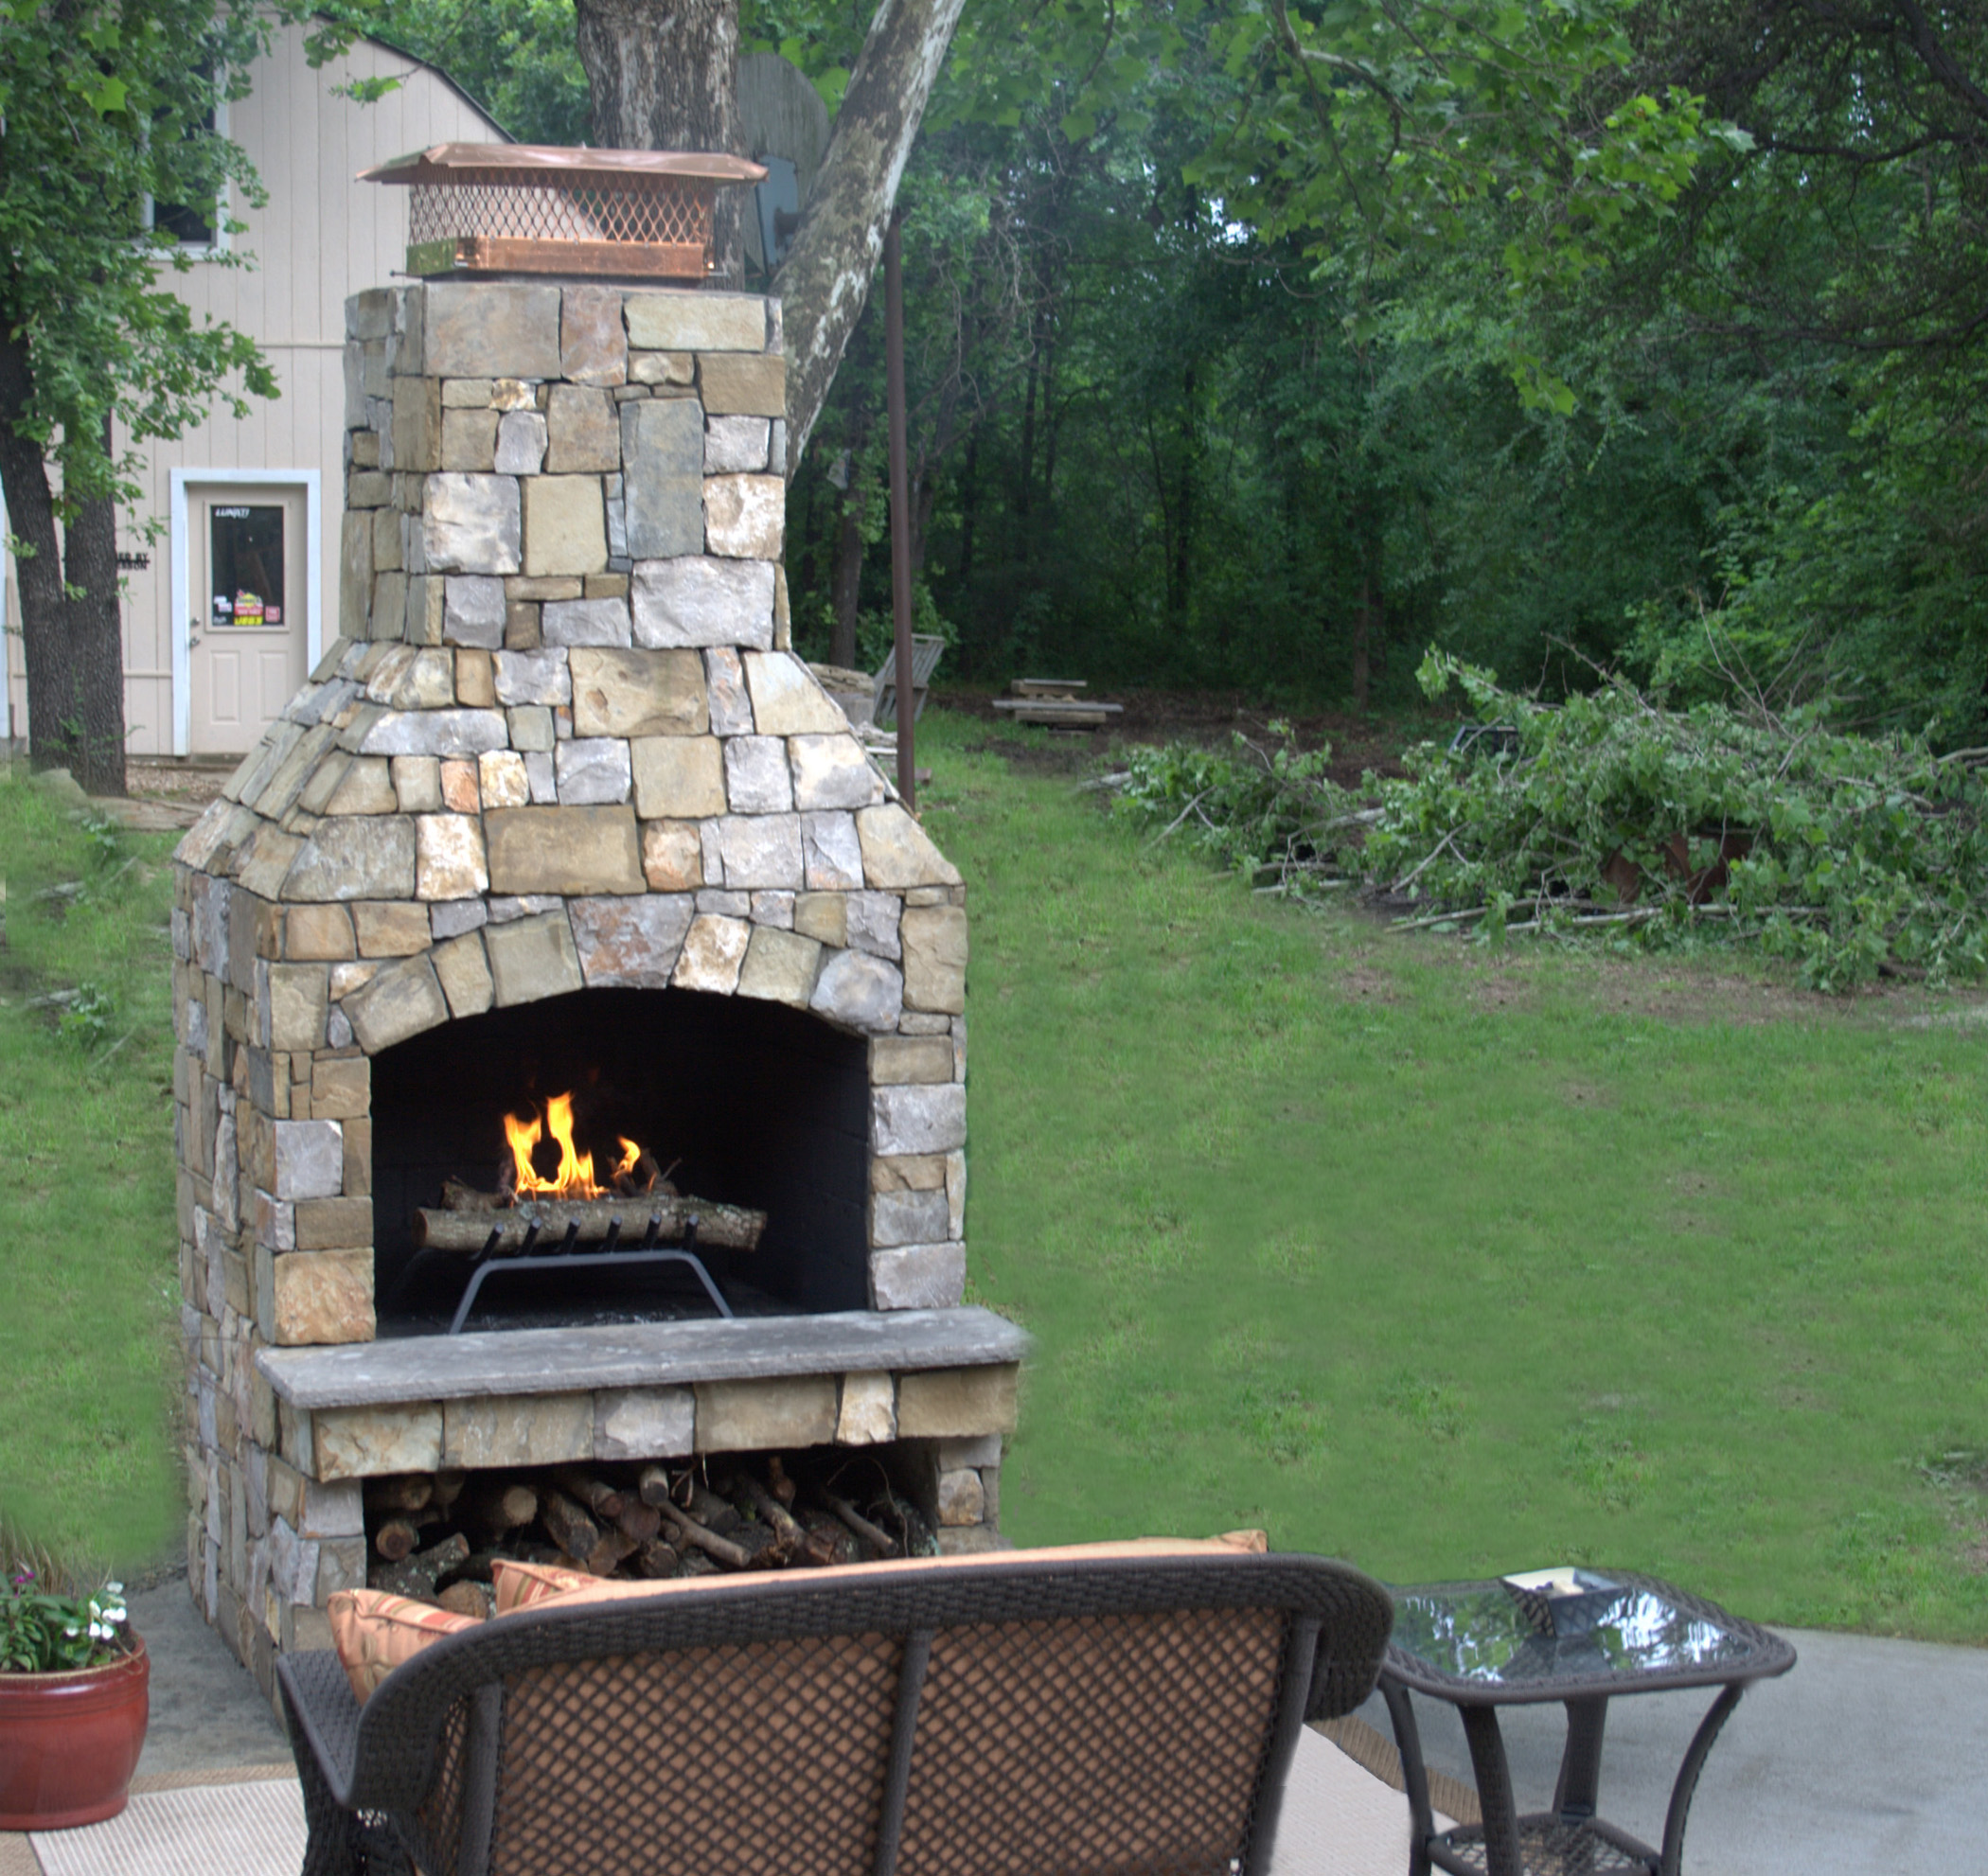 pizza stone oven and footing fireplace with outdoor fireplaces side brick goodin mark